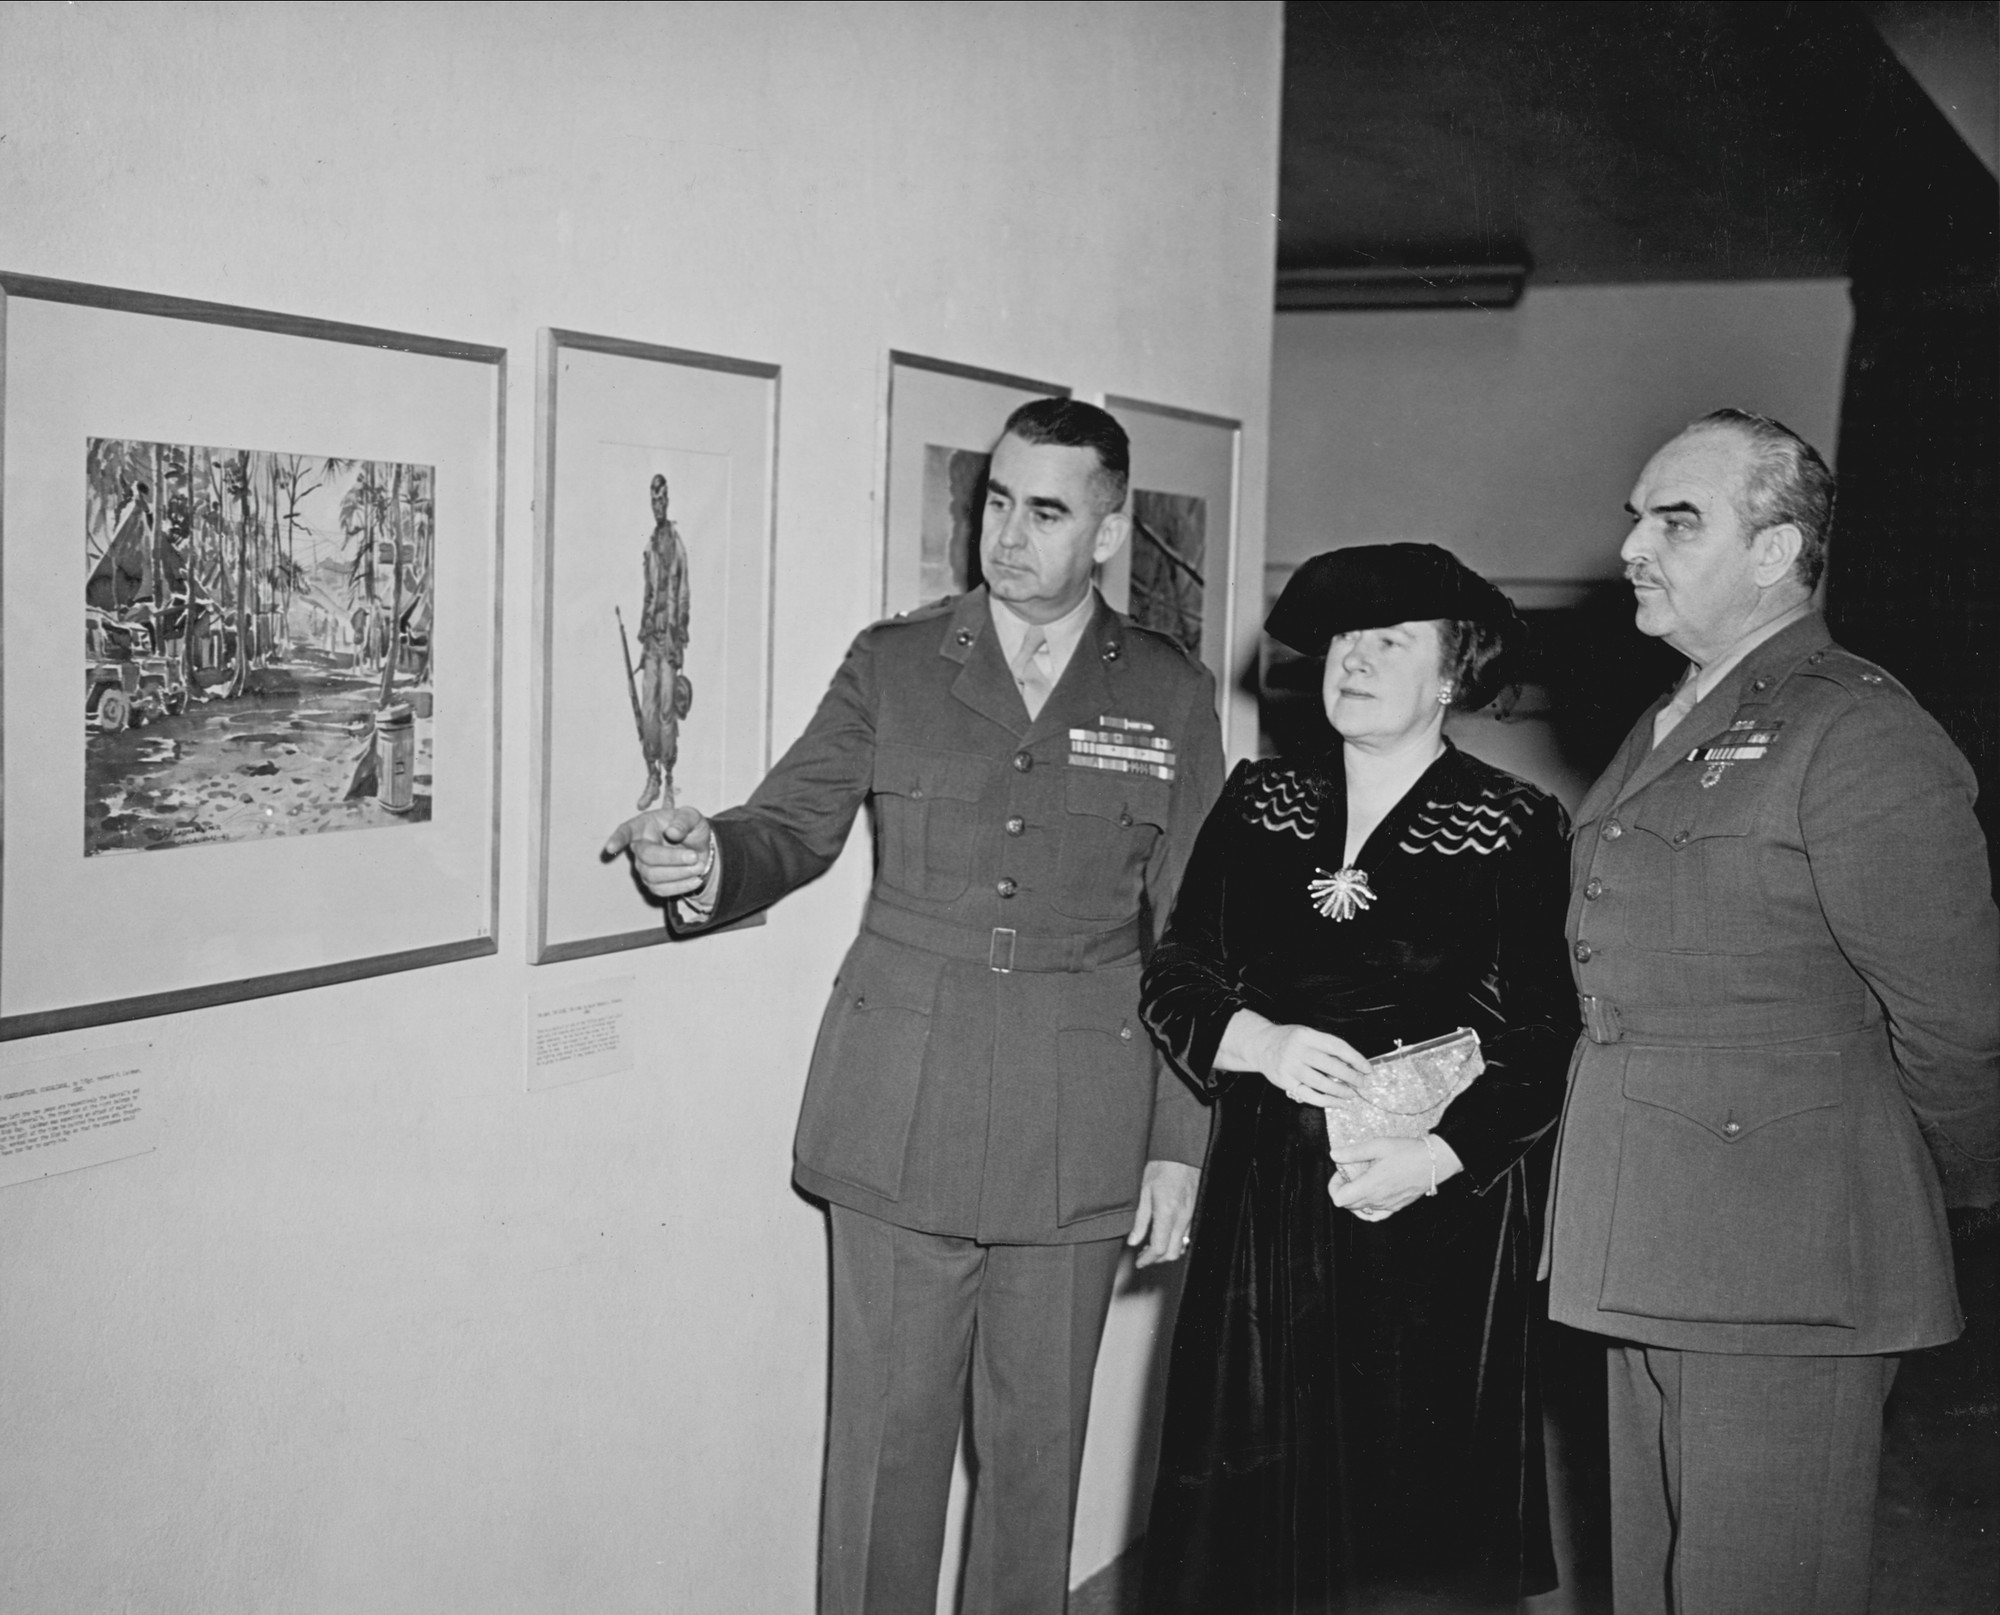 """Brigadier General del Valle and Mrs. del Valle visit 'Marines under Fire' Exhibition.  Brigadier General Pedro Augusto del Valle, U.S.M.C. and Mrs del Valle are shown looking at T/Sgt. Herbert Hugh Laidman's watercolor 'Wing Headquarters, Guadalcanal' in the exhibition of 'Marines under Fire' at the Museum of Modern Art (November 10 - January 9).  General del Valle was at Guadalcanal and most of the scenes portrayed in the exhibition are very familiar to him."" November 10, 1943–January 9, 1944. Photographic Archive. The Museum of Modern Art Archives, New York. IN245.1"